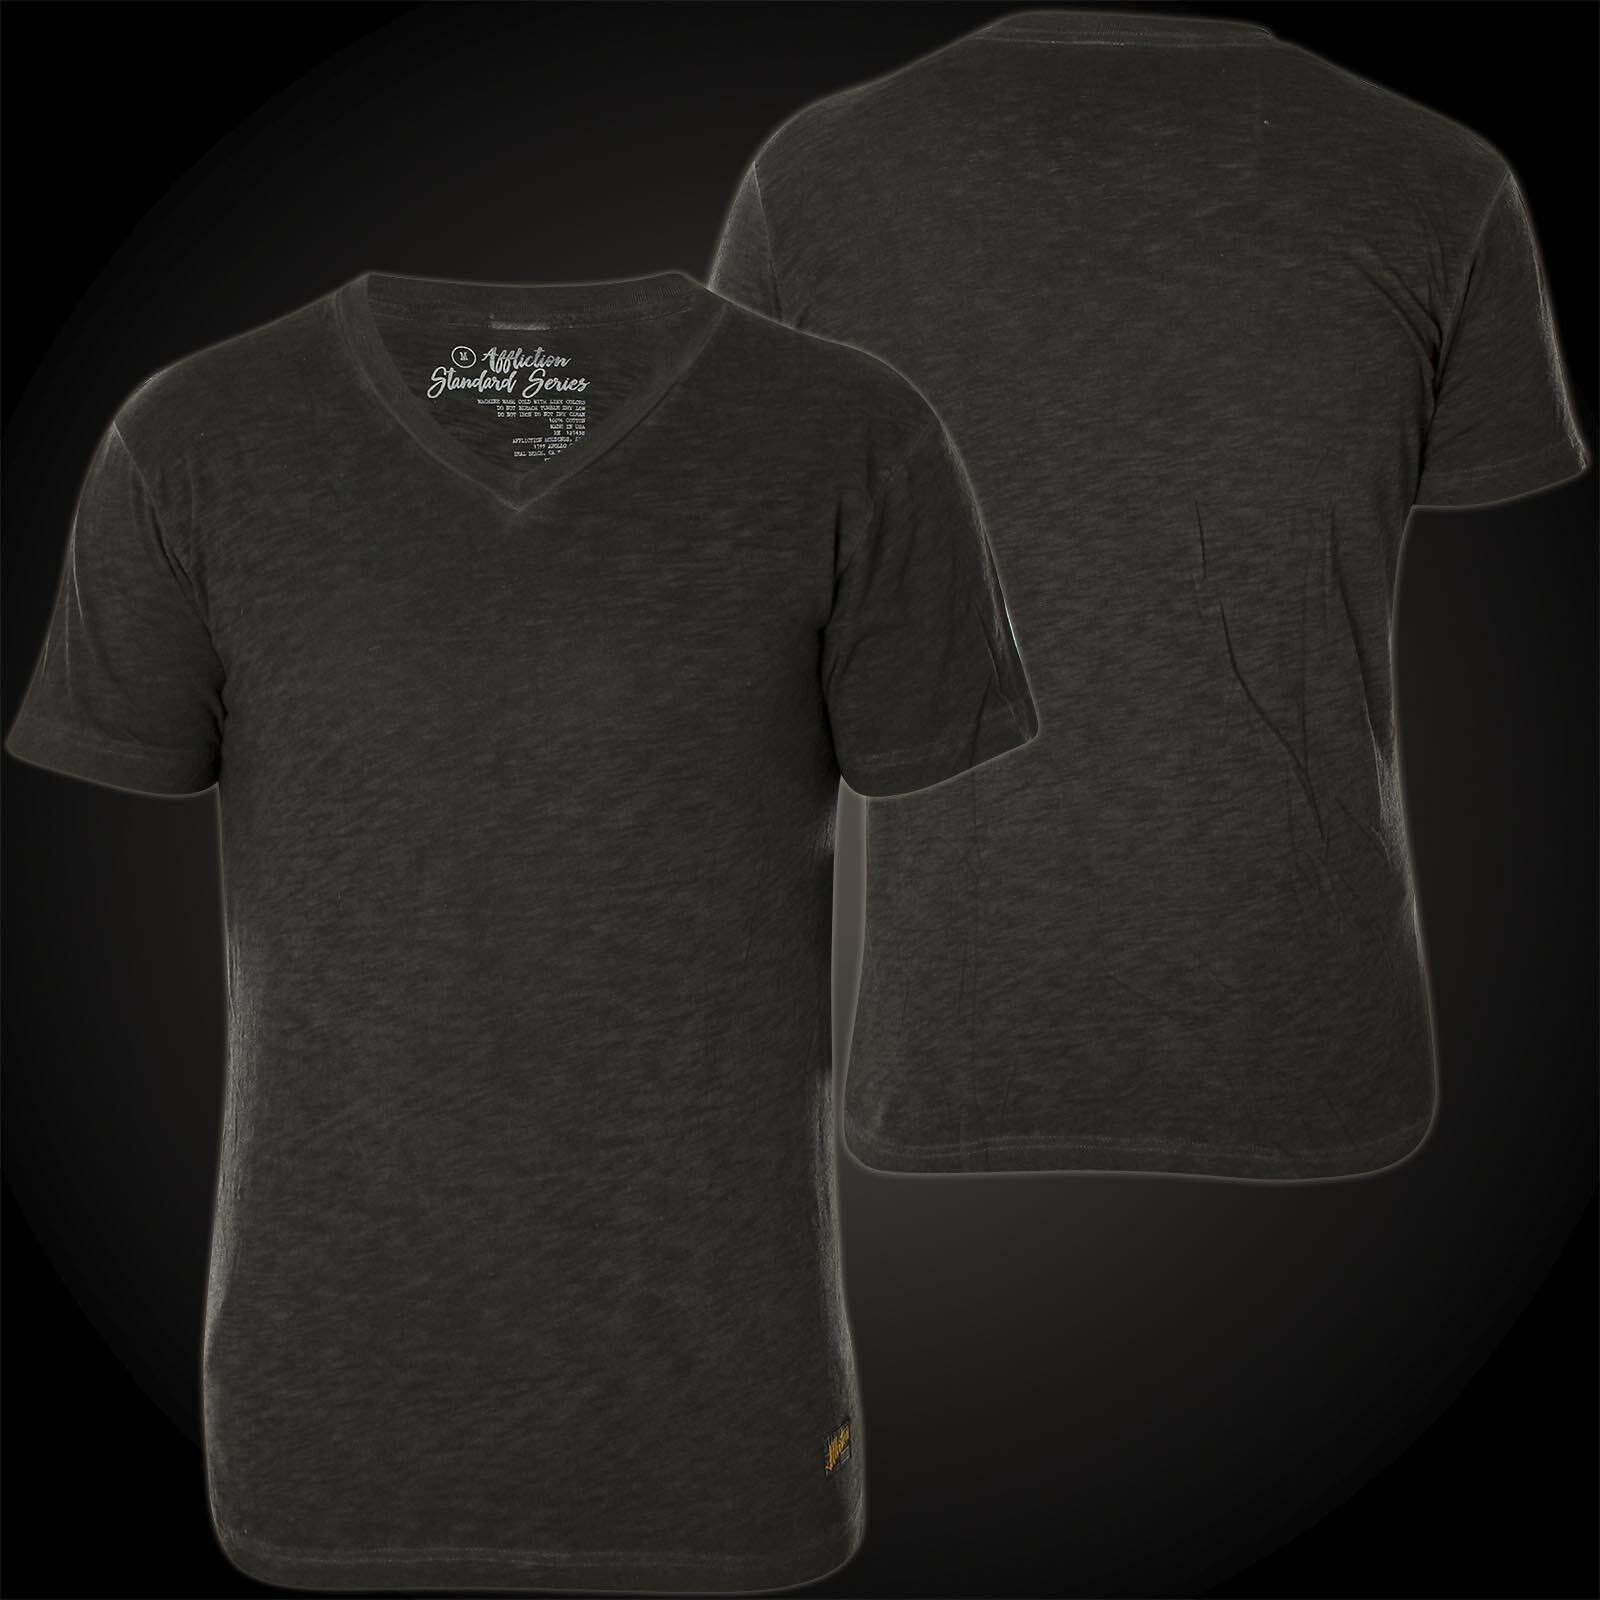 AFFLICTION T-Shirt Standard Supply Dunkelgrau T-Shirts